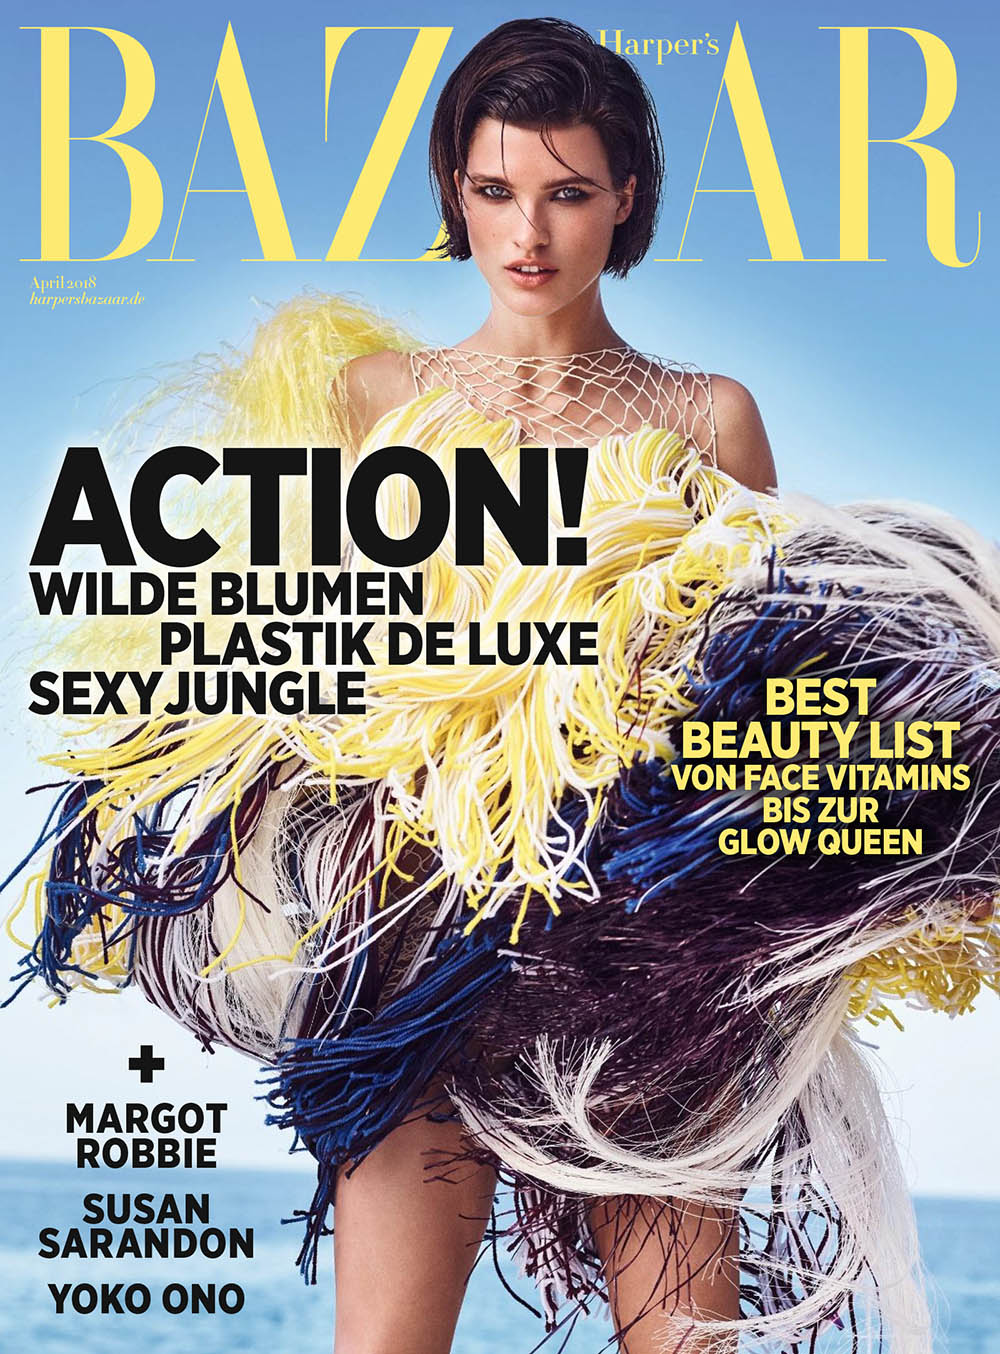 Julia van Os covers Harper's Bazaar Germany April 2018 by Marcin Tyszka